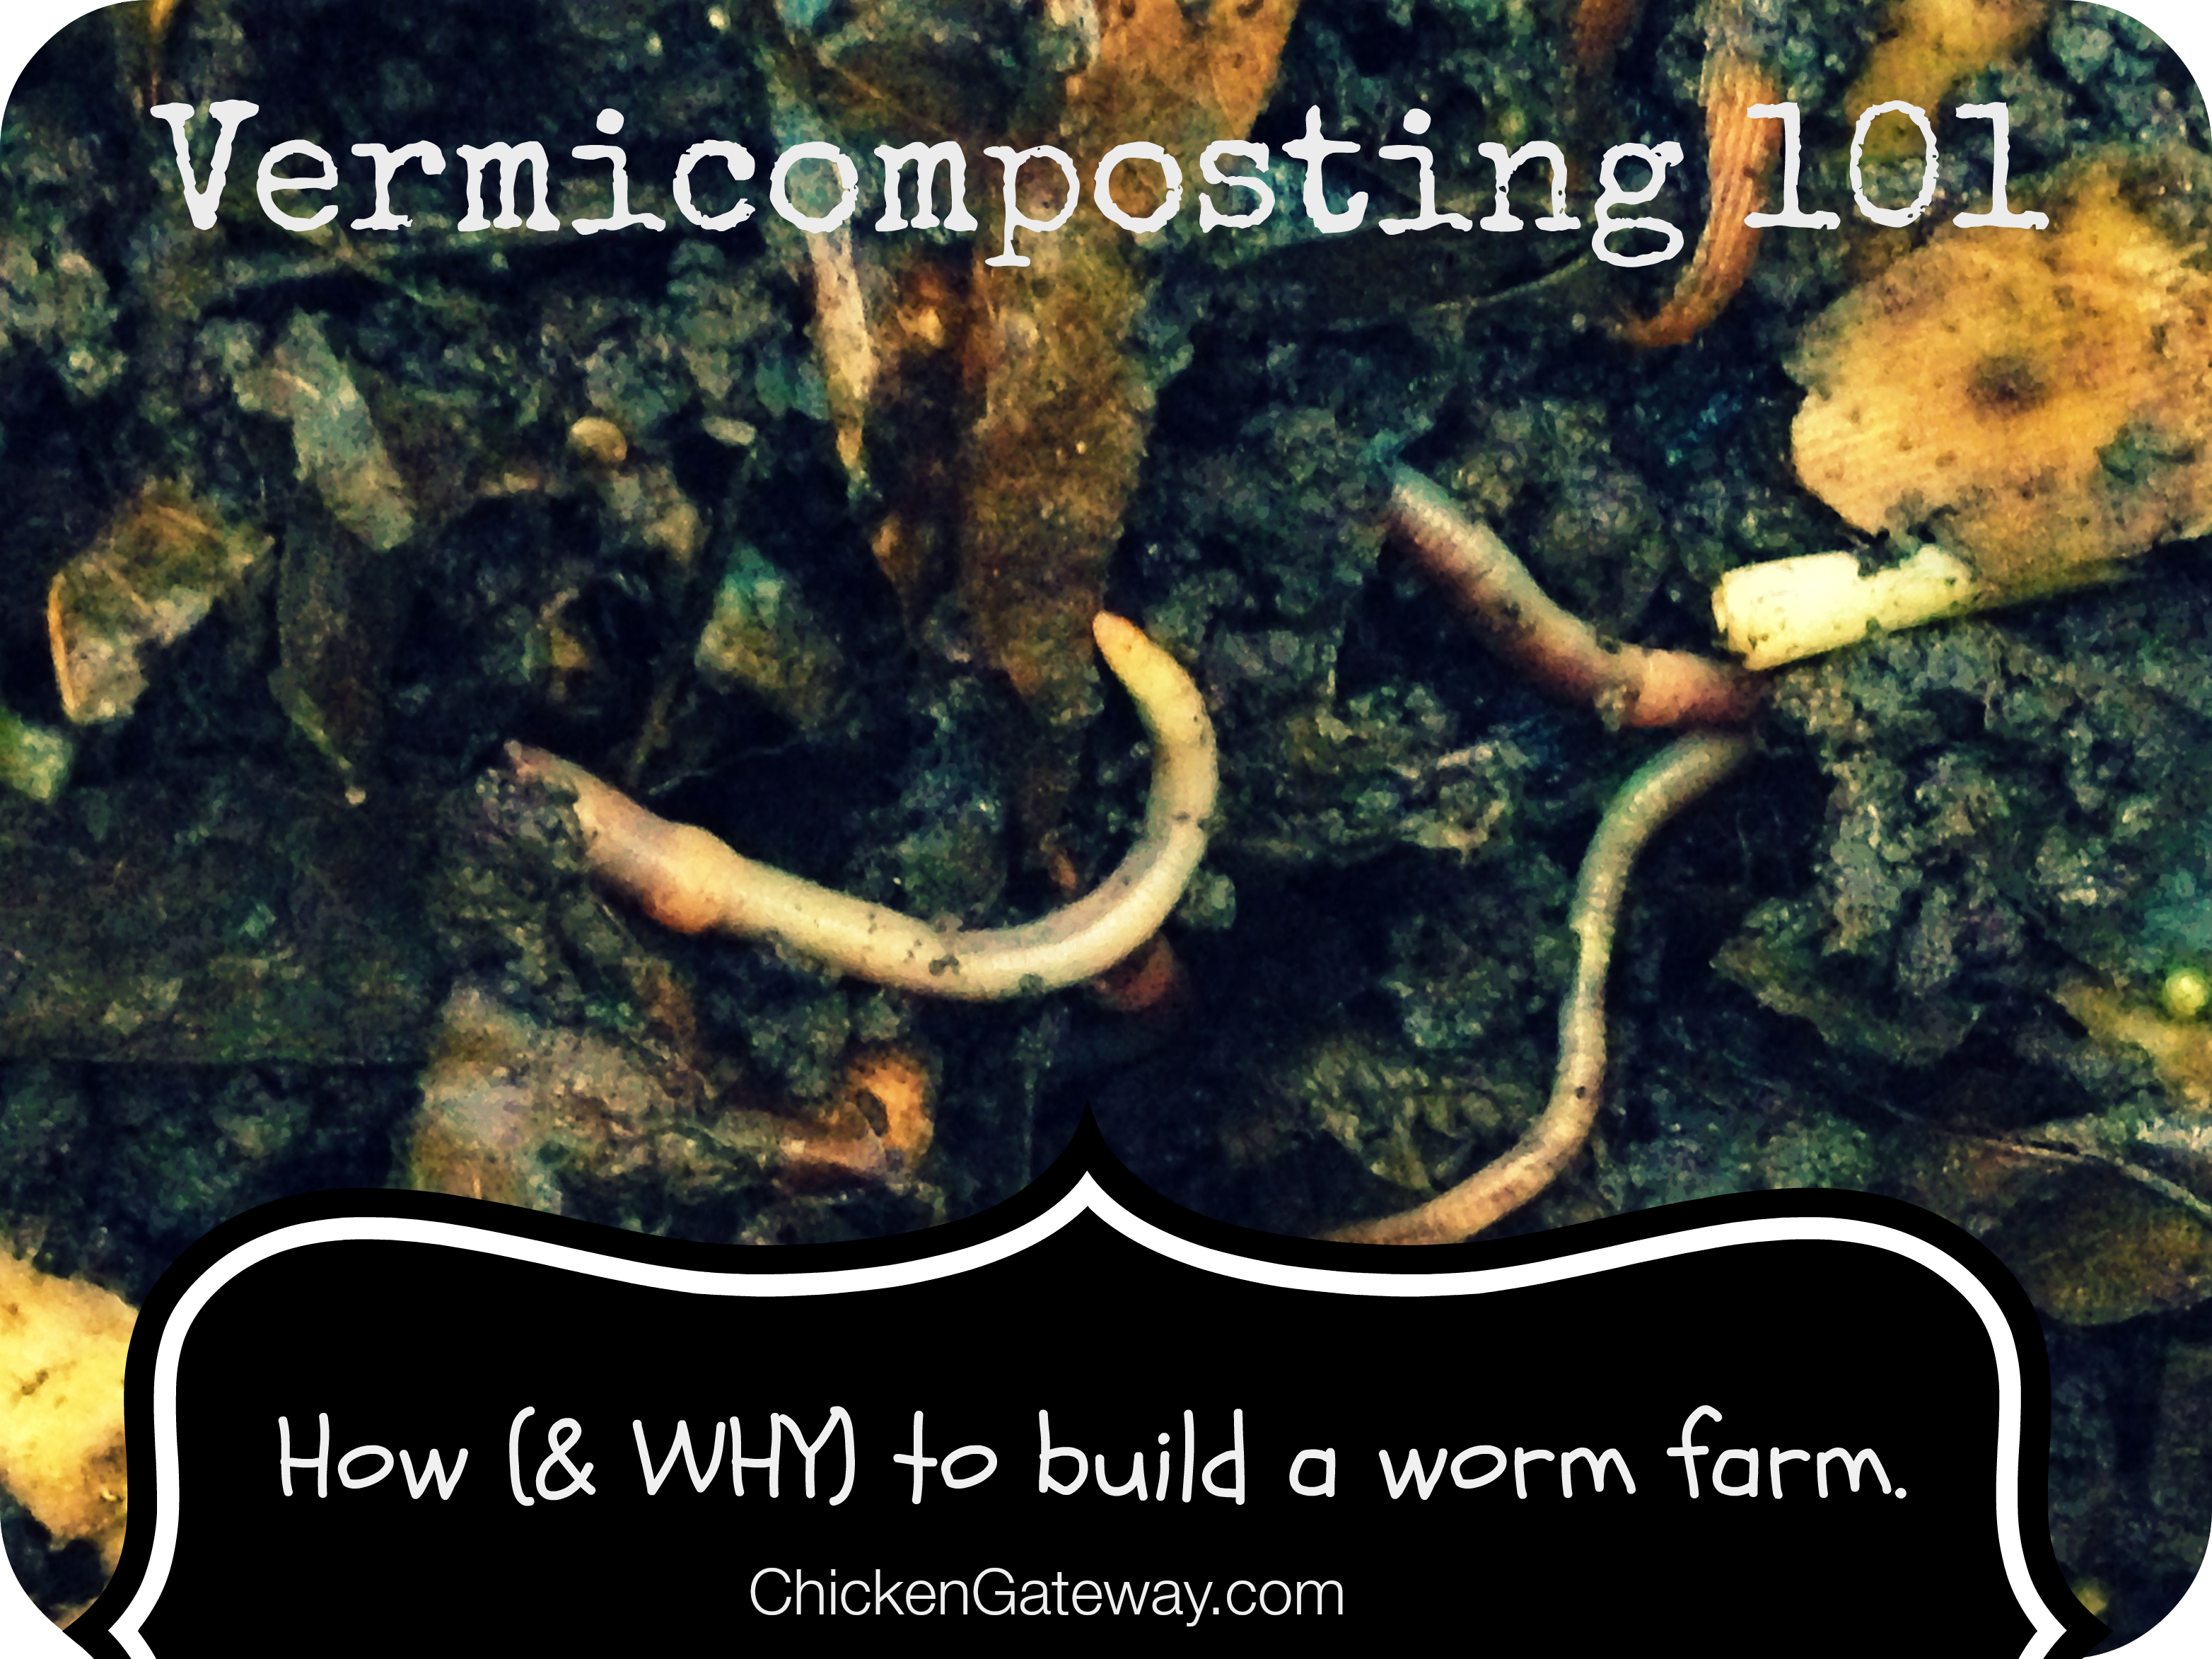 Vermicomposting 101: How & Why to Start a Worm Farm